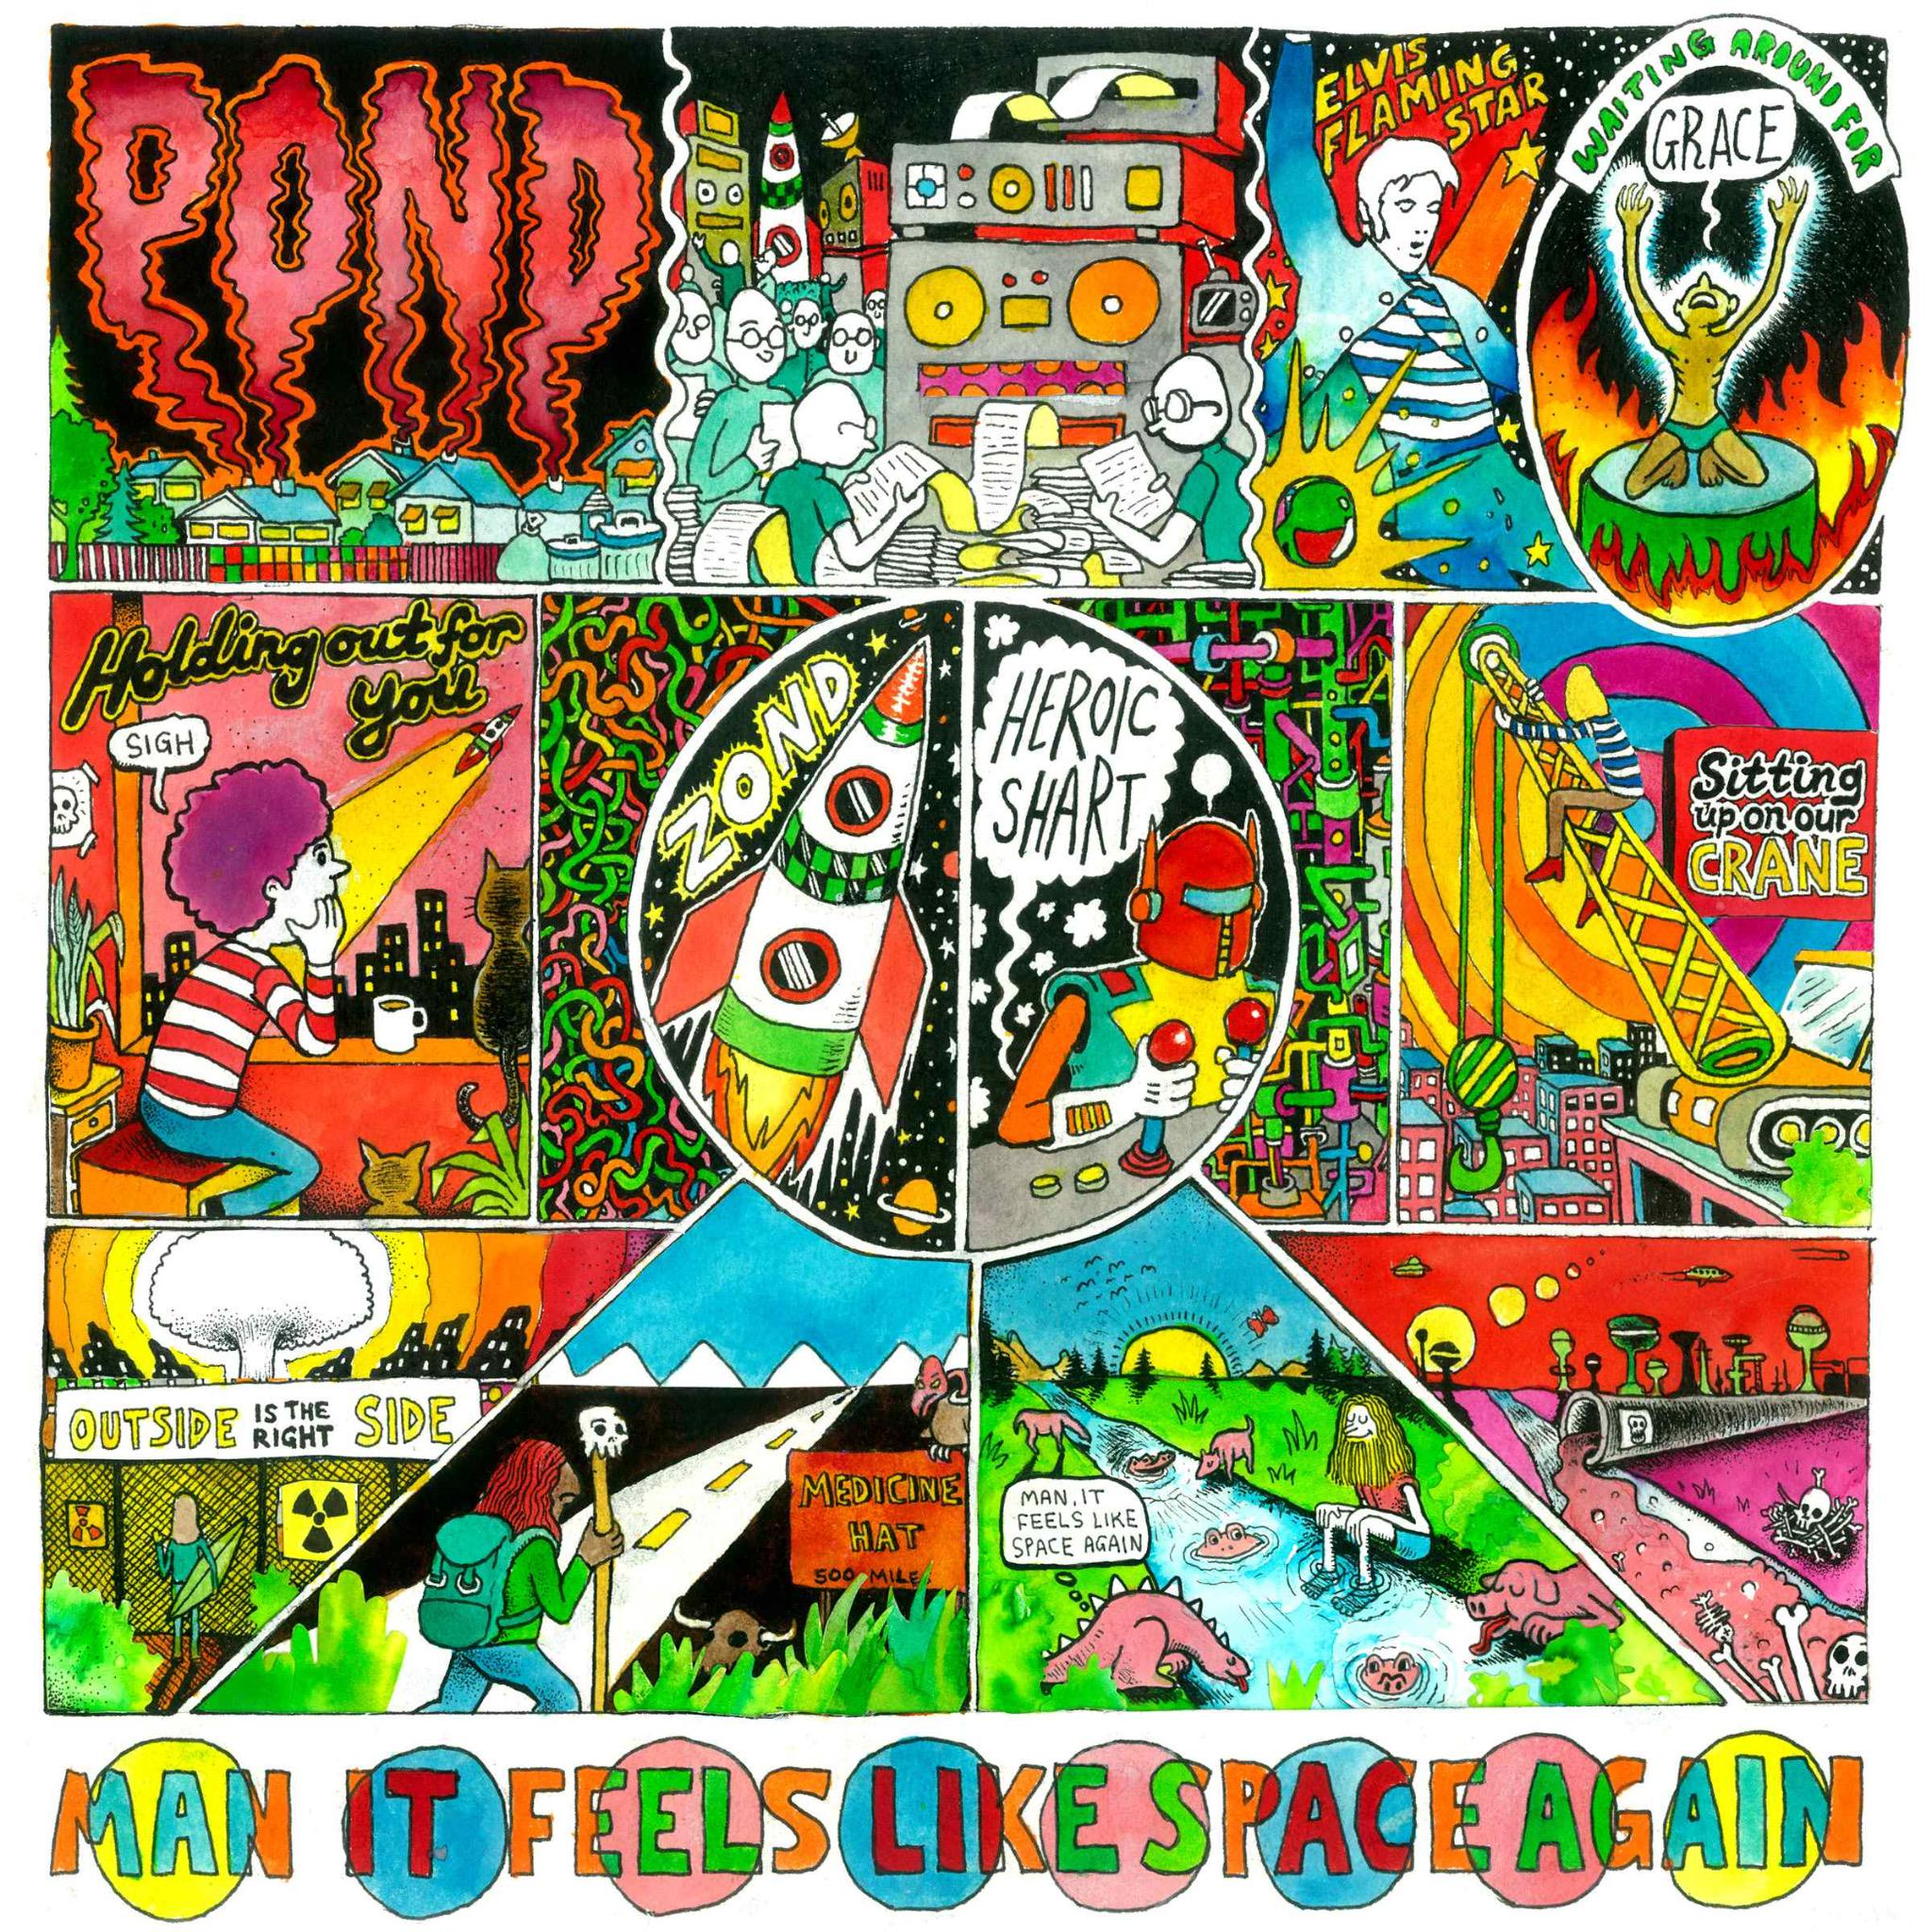 RT @PONDband: Less than a month until the UK tour begins! Tickets are on sale now: http://t.co/Fpf36M36qr http://t.co/w8zWU74UyH